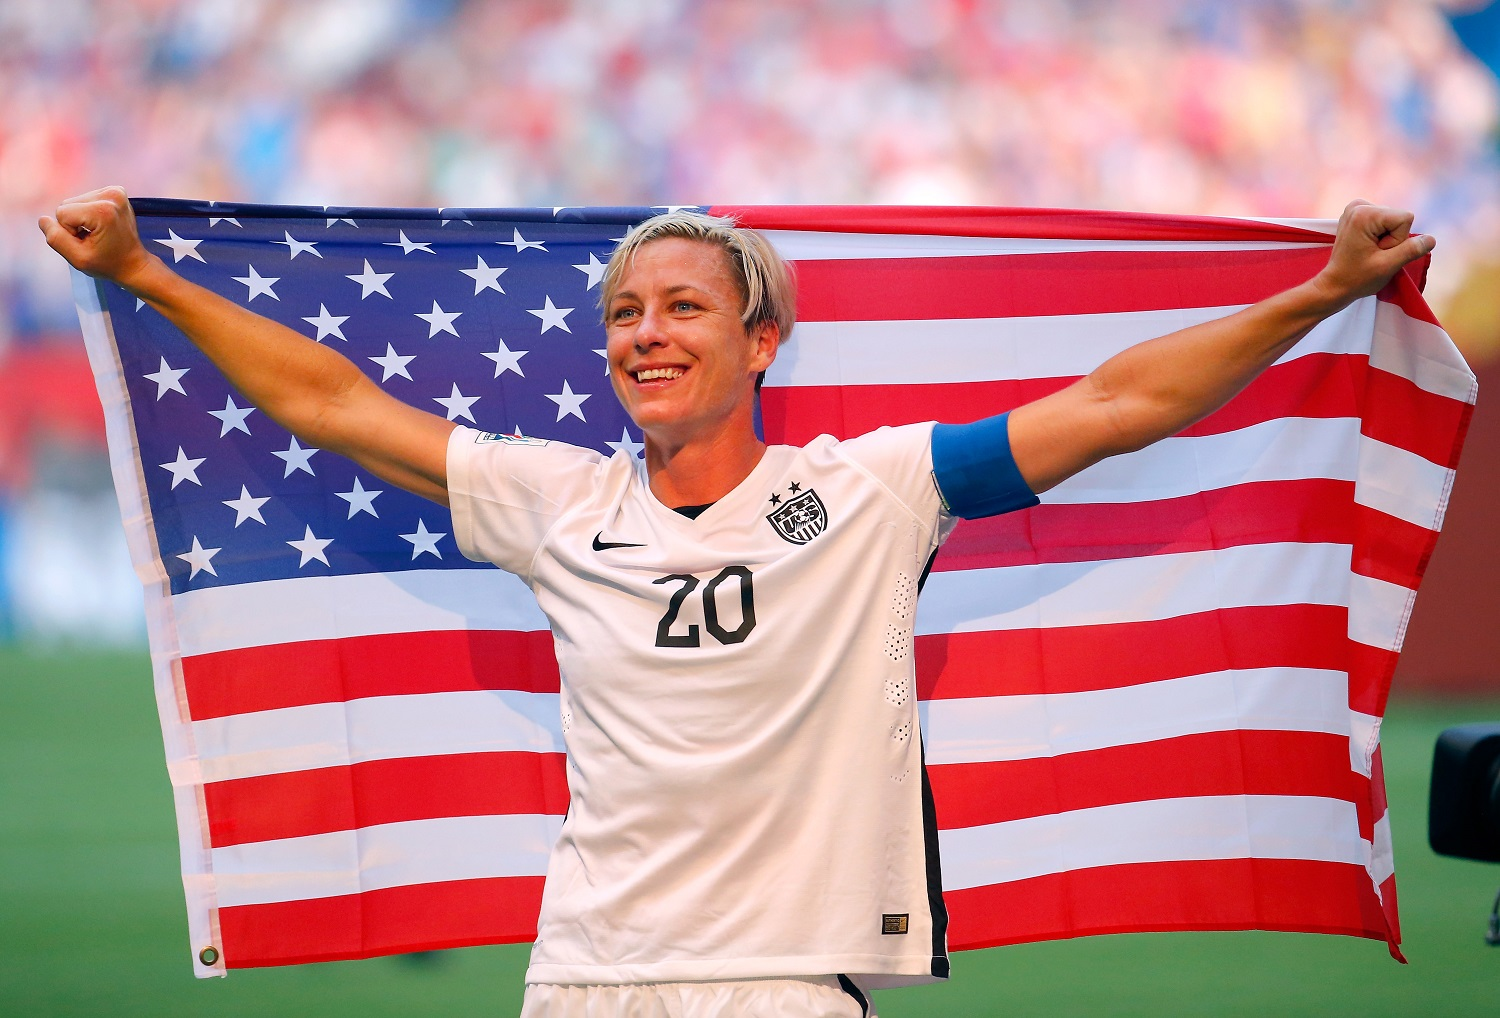 Abby Wambach is one of the retired U.S. Women's National Team soccer stars volunteering for a CTE study.